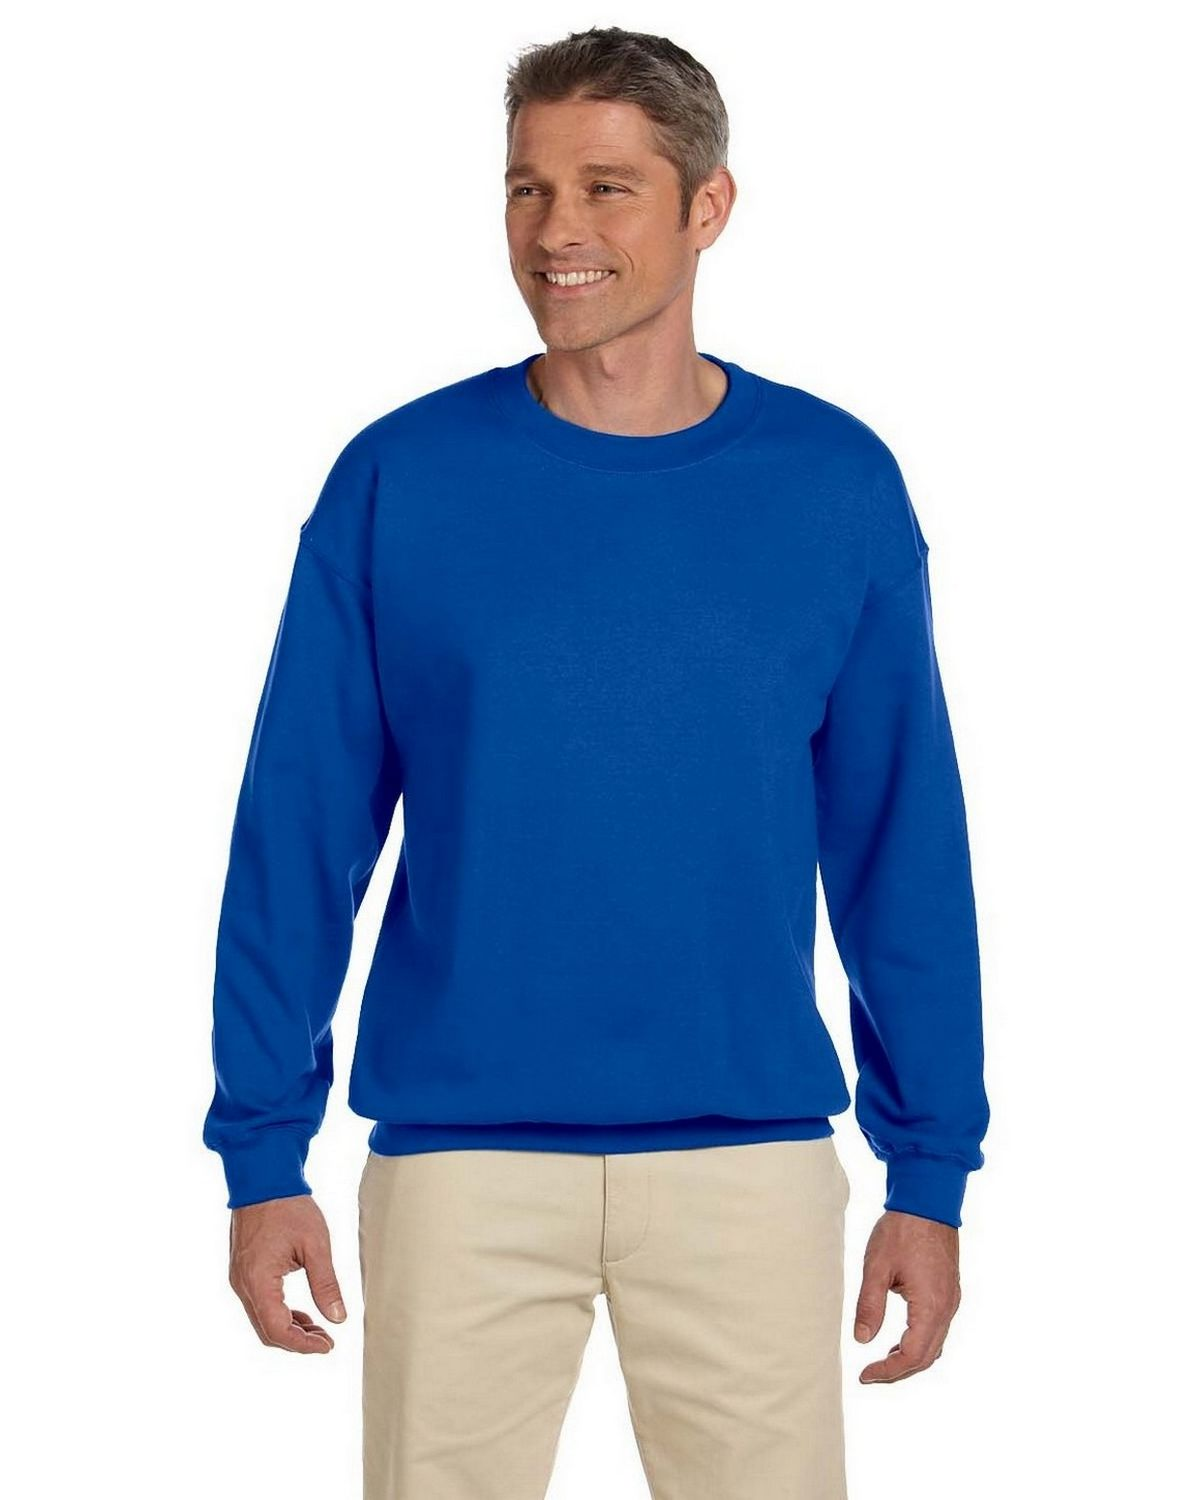 Gildan Mens 8 Oz Heavy Blend 50/50 Fleece Crew G180 -Royal L G180